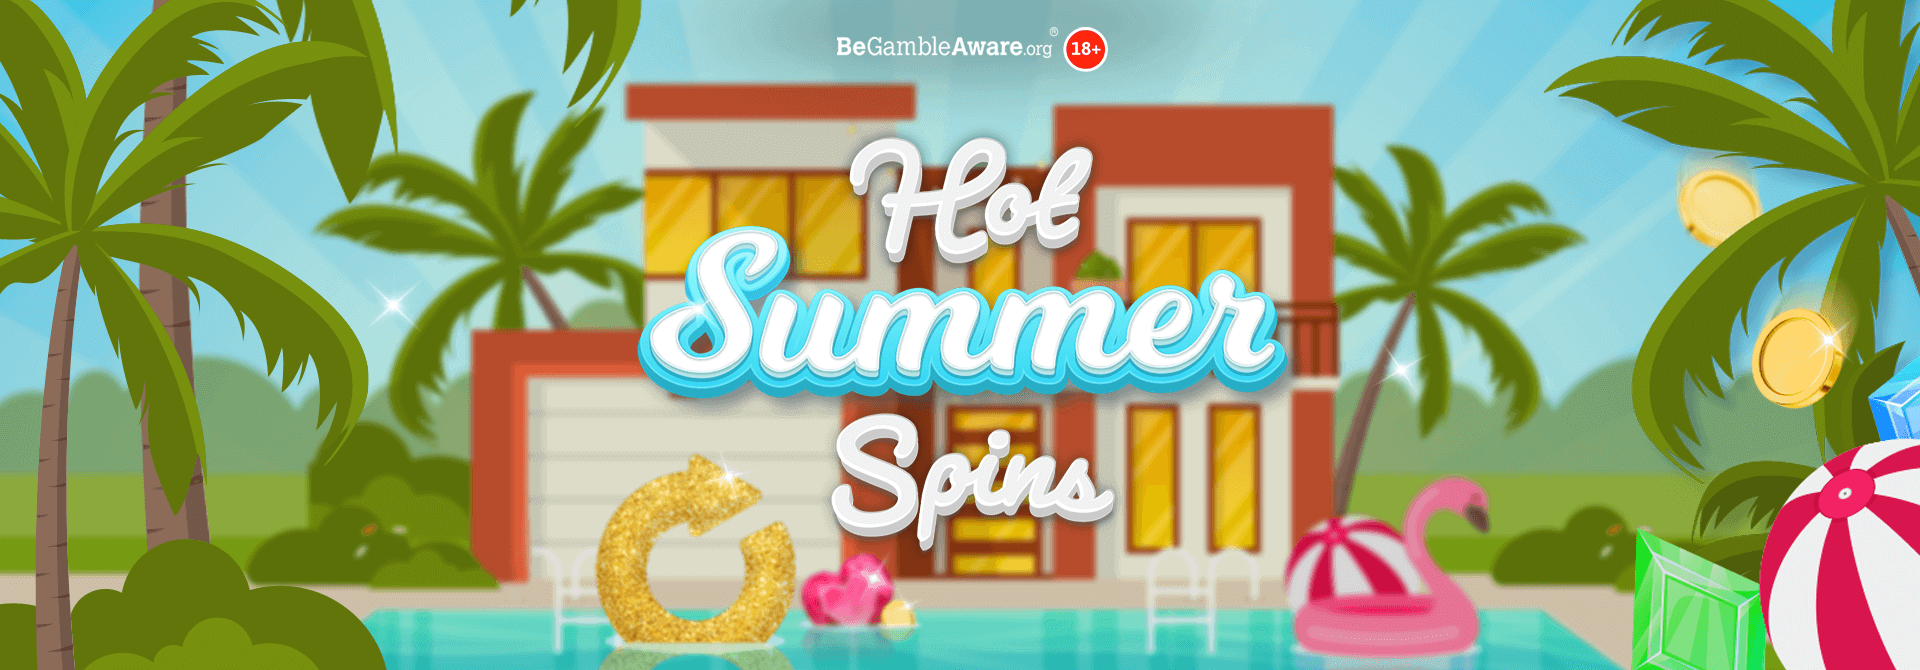 Did you manage to win and crack on with a share of up to 20,000 summer spins?